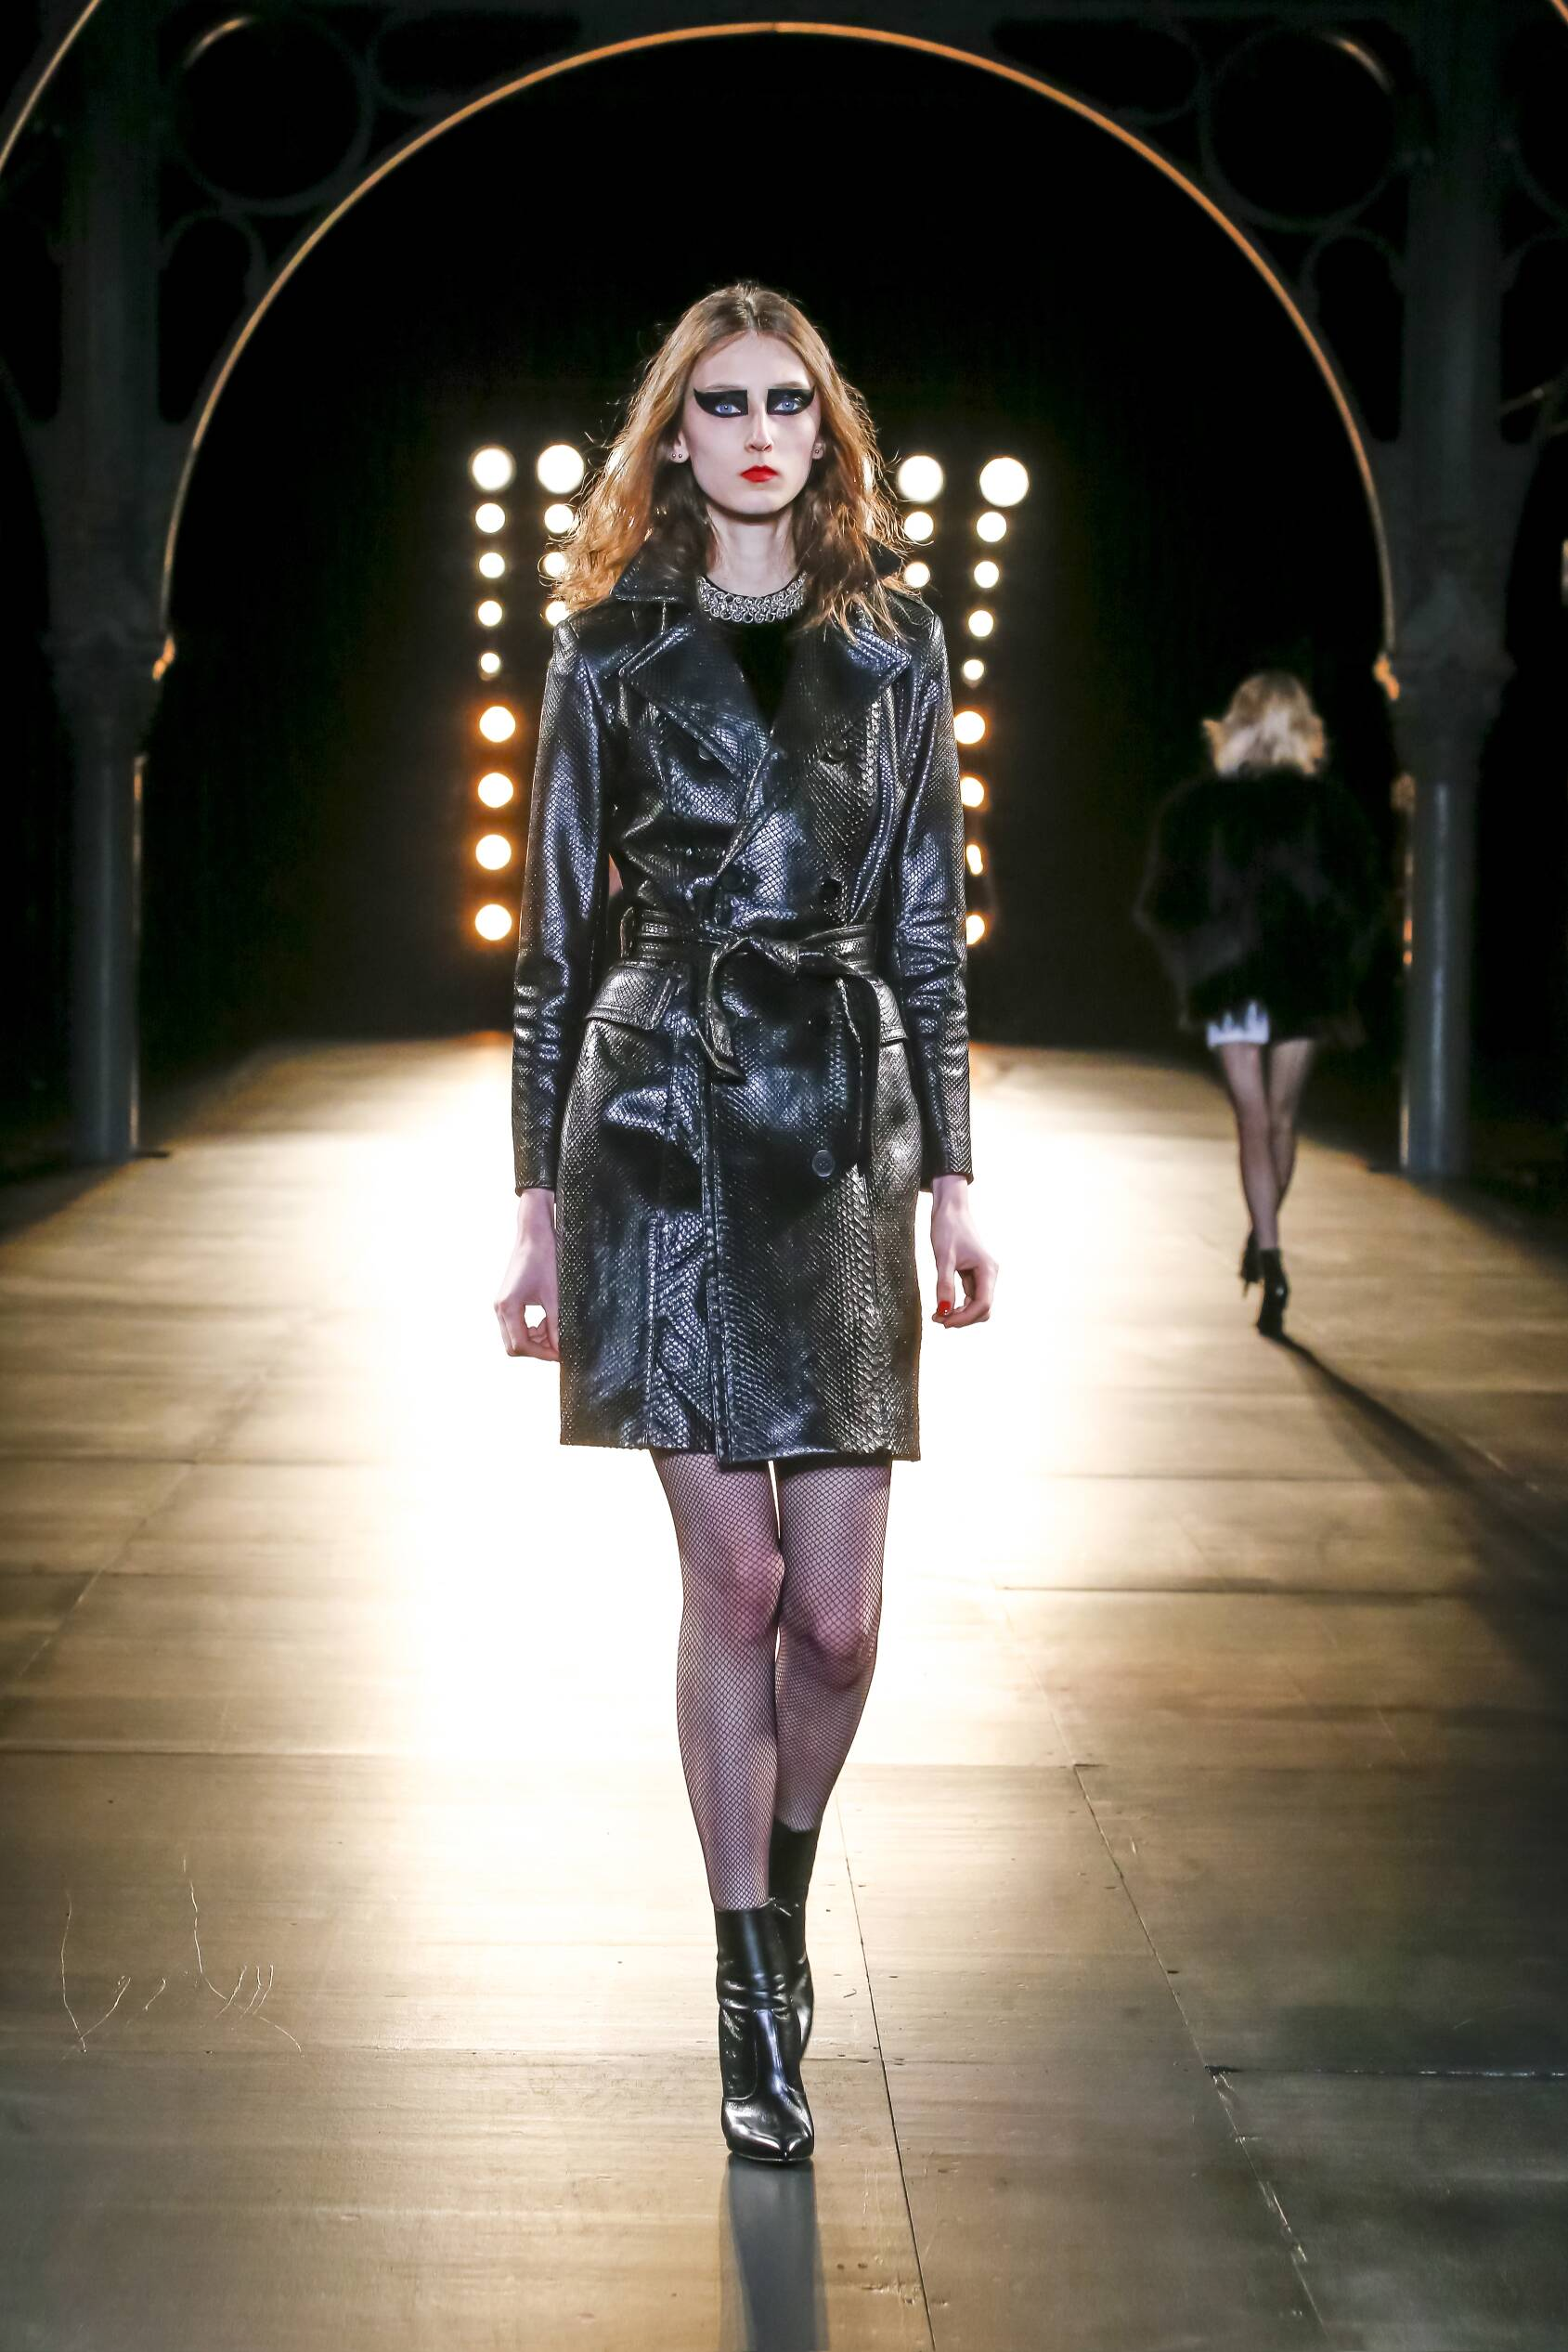 Catwalk Saint Laurent Fall Winter 2015 16 Women's Collection Paris Fashion Week